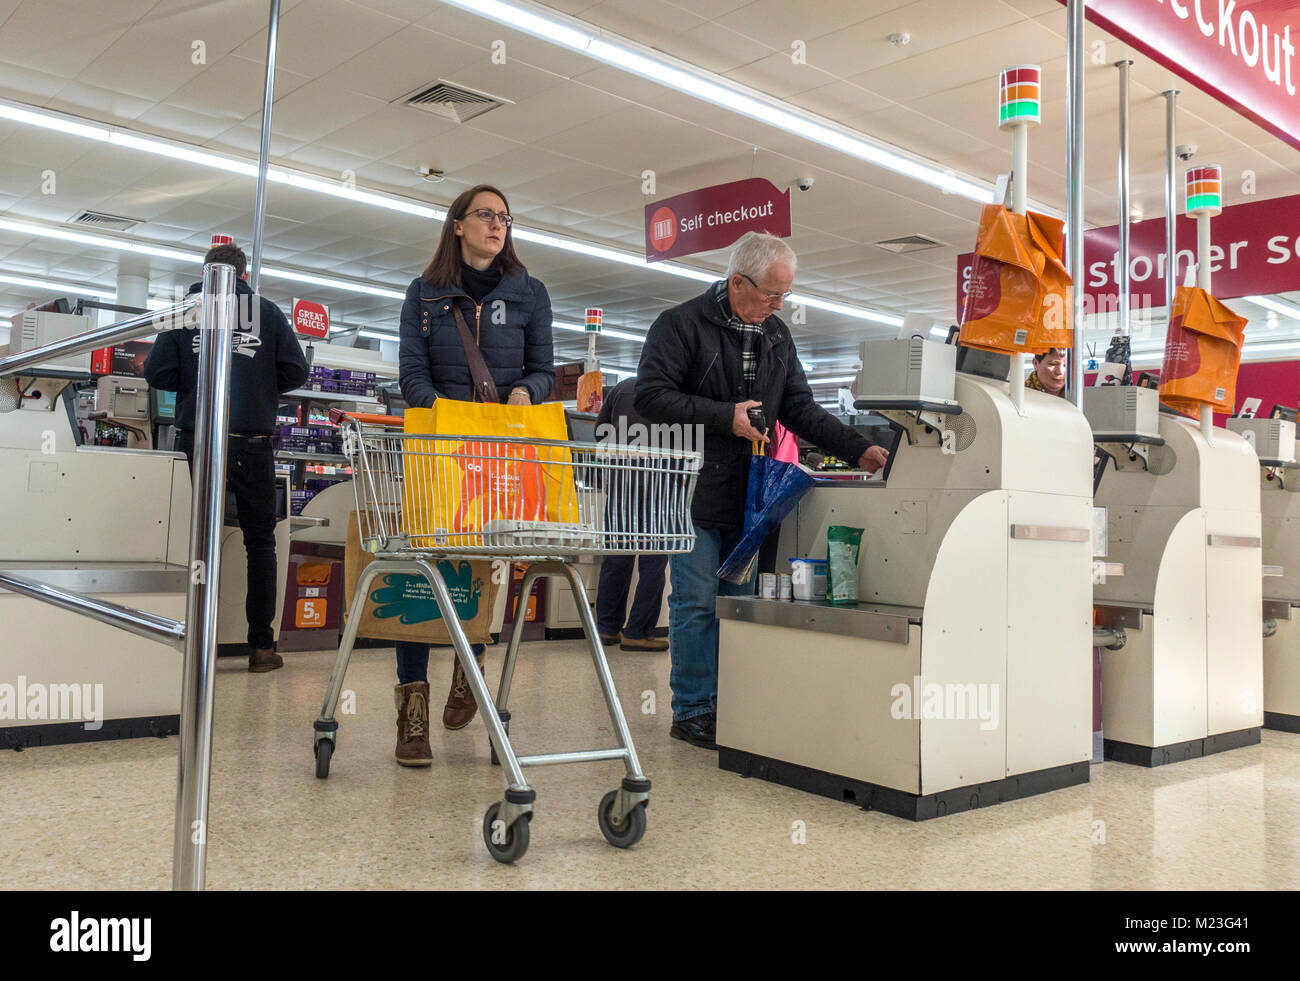 Woman with trolley and customers paying for their shopping at the self checkout area of Sainsbury's supermarket - Stock Image